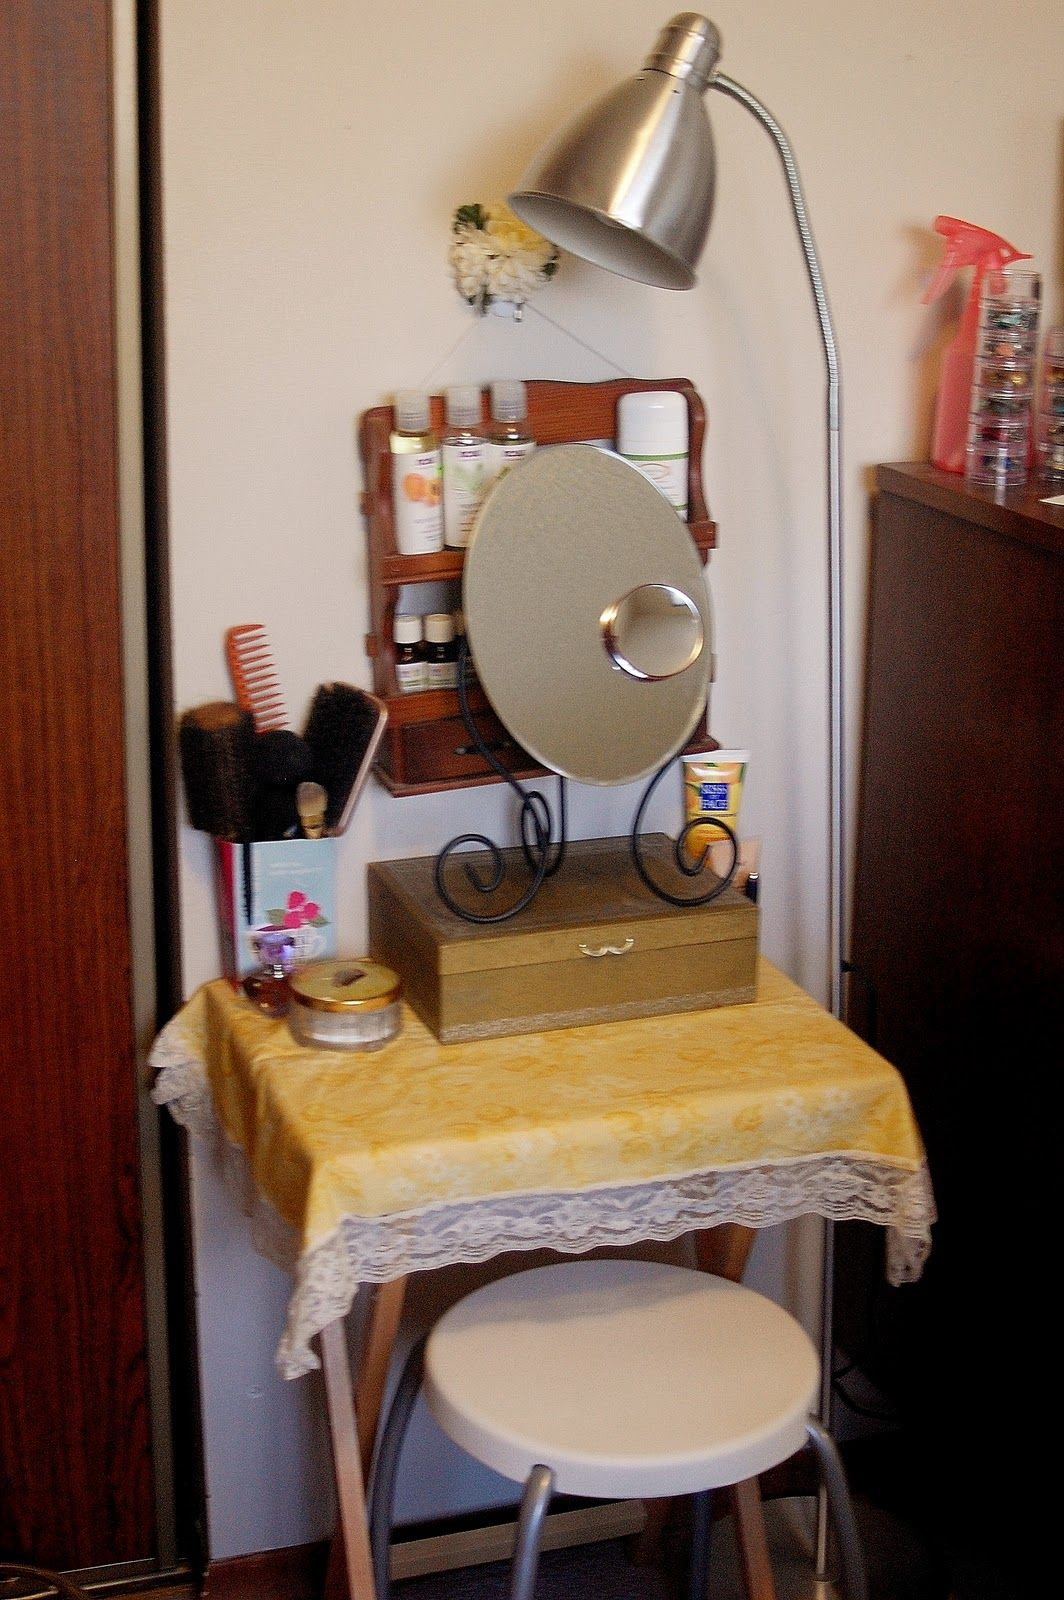 My Own DIY Makeup Vanity, Using Inexpensive Melamine Shelving. Fits In A  Very Small Space!   Makeup   Pinterest   Melamine Shelving, Diy Makeup  Vanity And ...